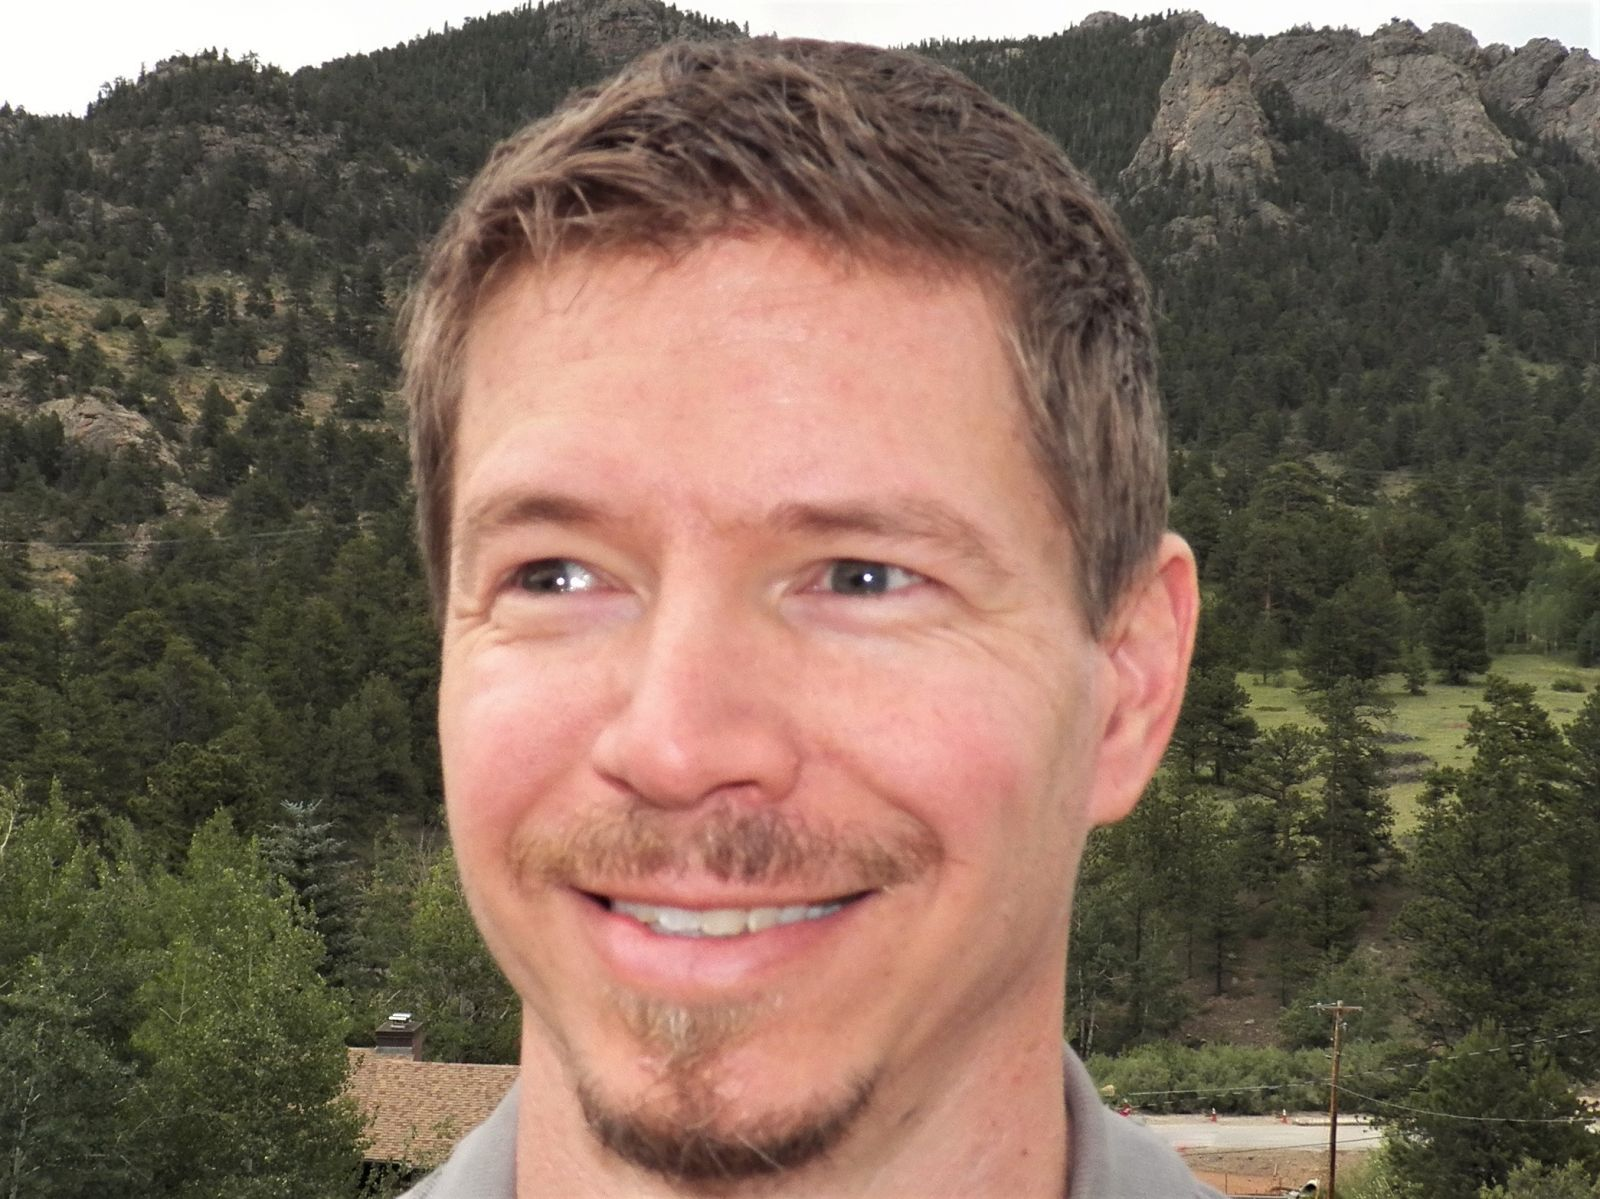 Jim Idler Estes Park Co Realtor Range Realty, Estes Park Realtor, Estes Park Real Estate